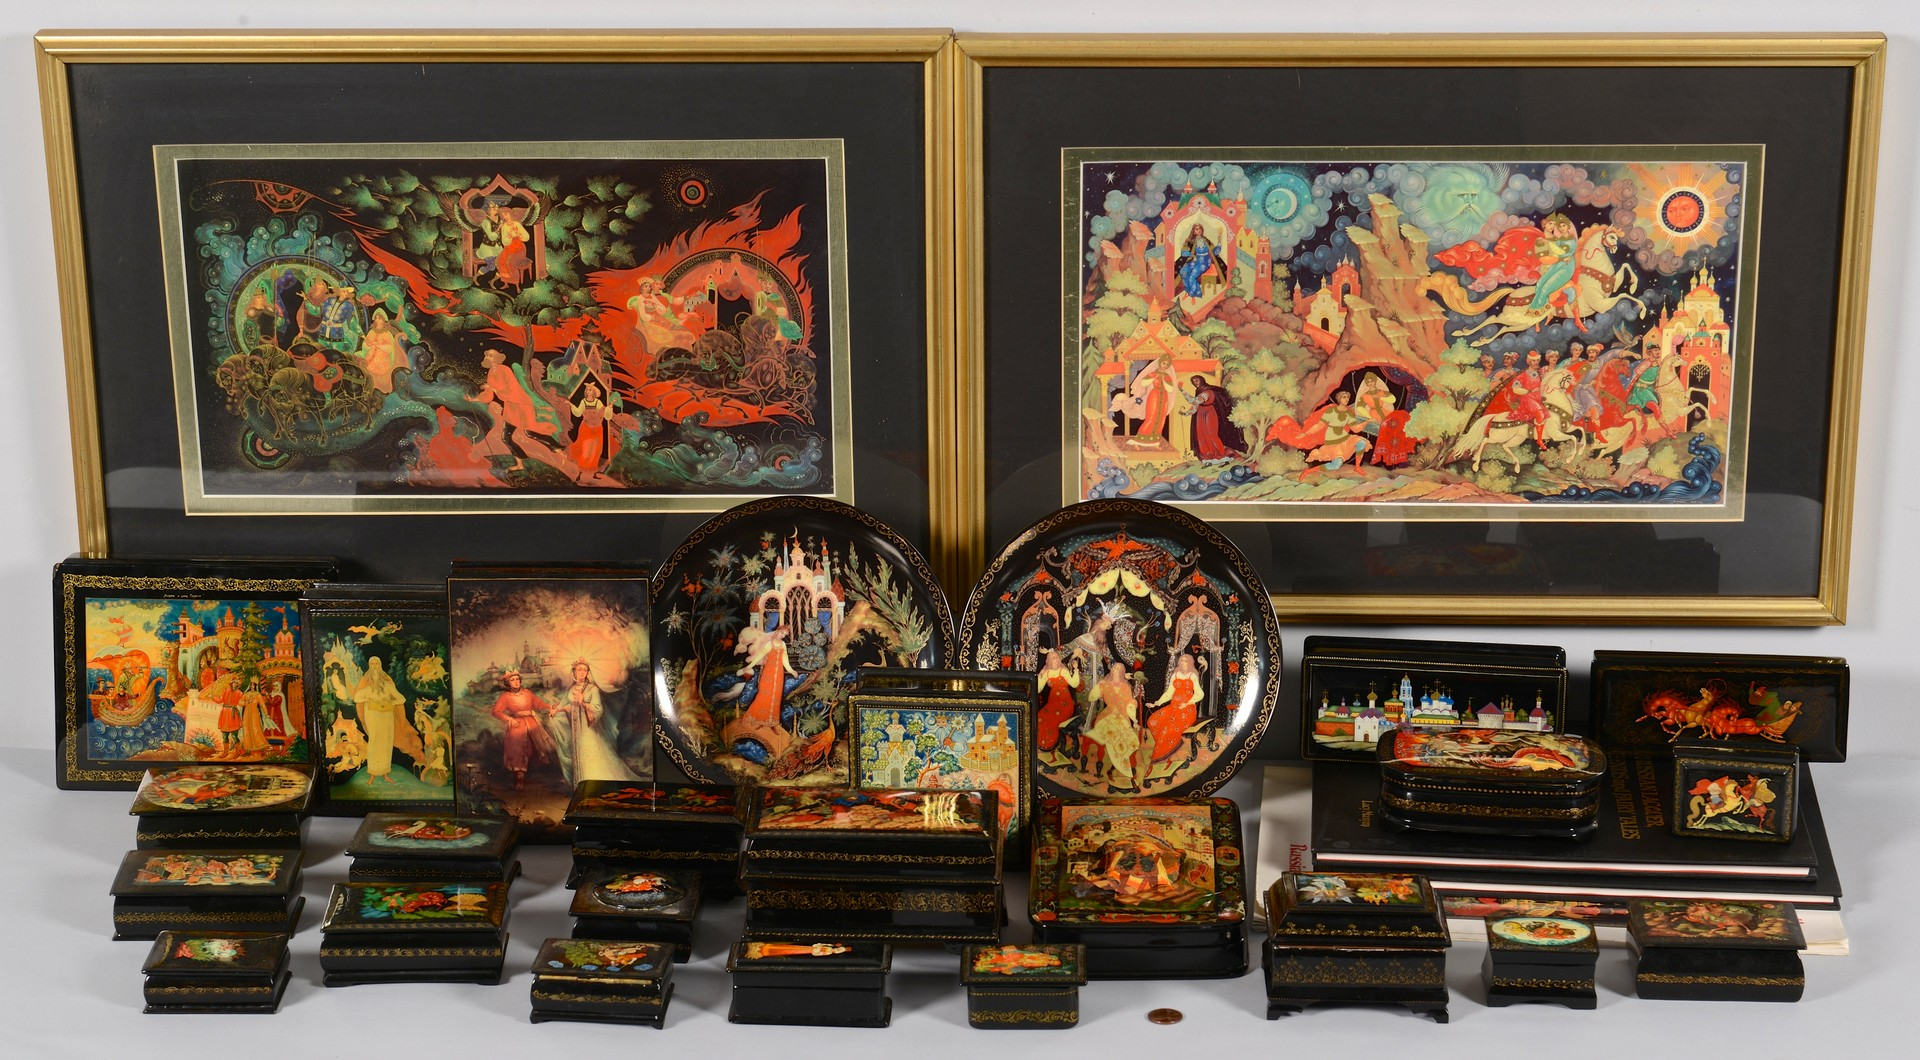 Lot 383: 23 Russian Lacquer Boxes